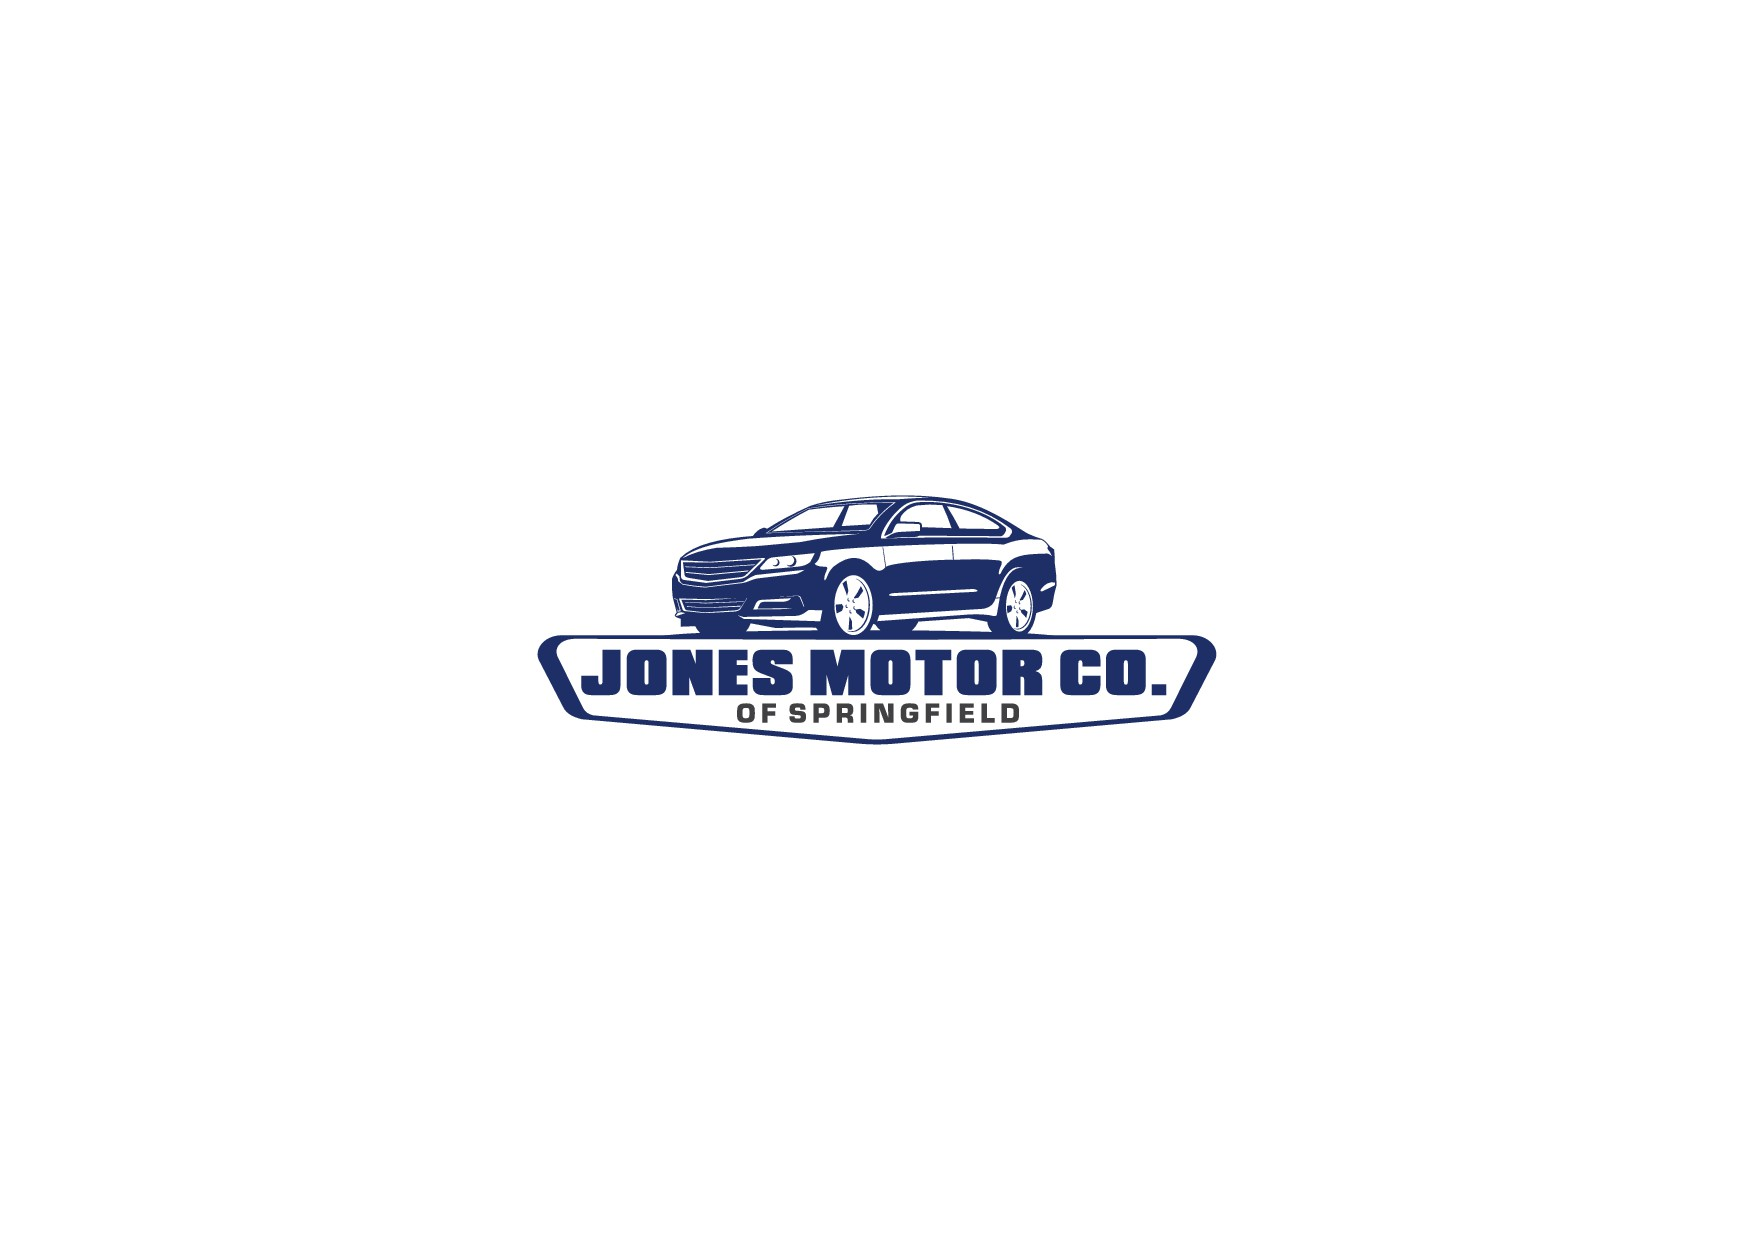 Show Jones Motor Co. of Springfield your skills. Knock our socks off with a great logo.